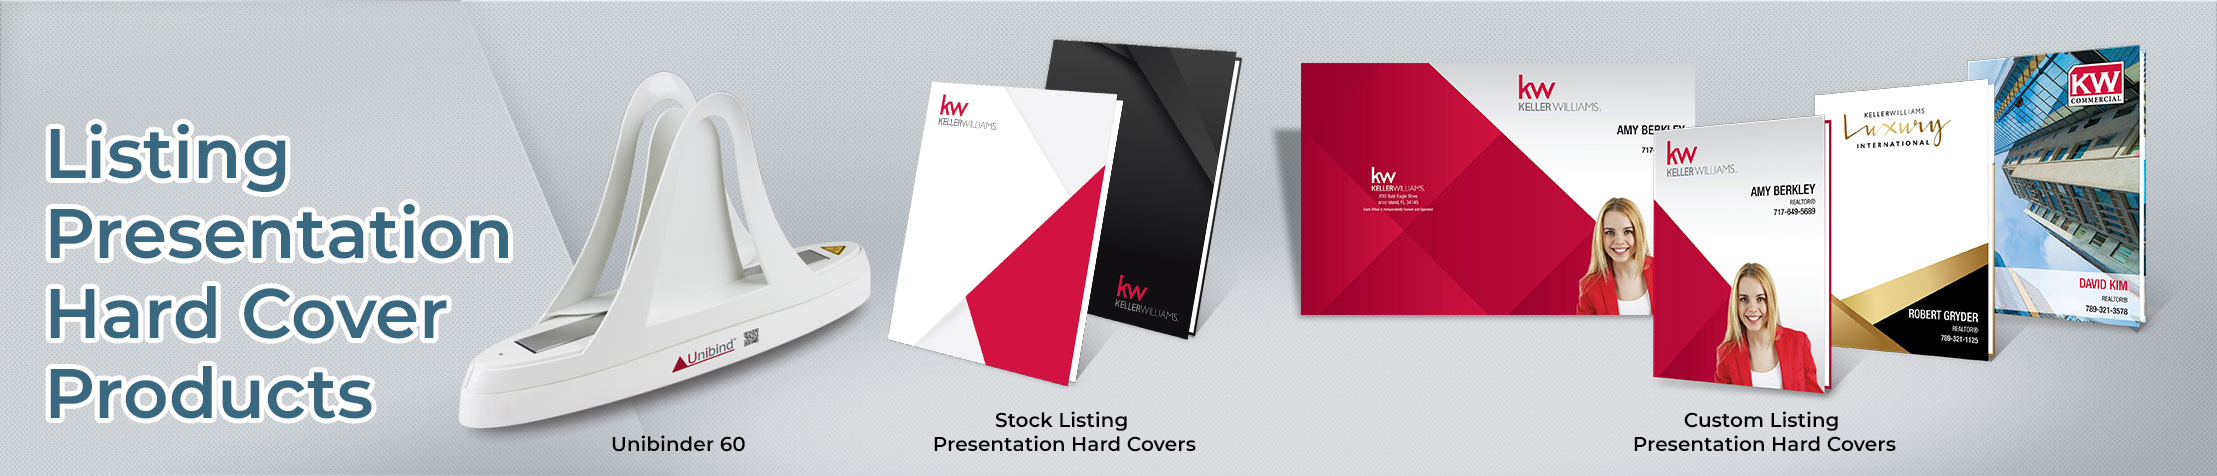 Keller Williams Real Estate Presentation covers - KW approved vendor covers | BestPrintBuy.com